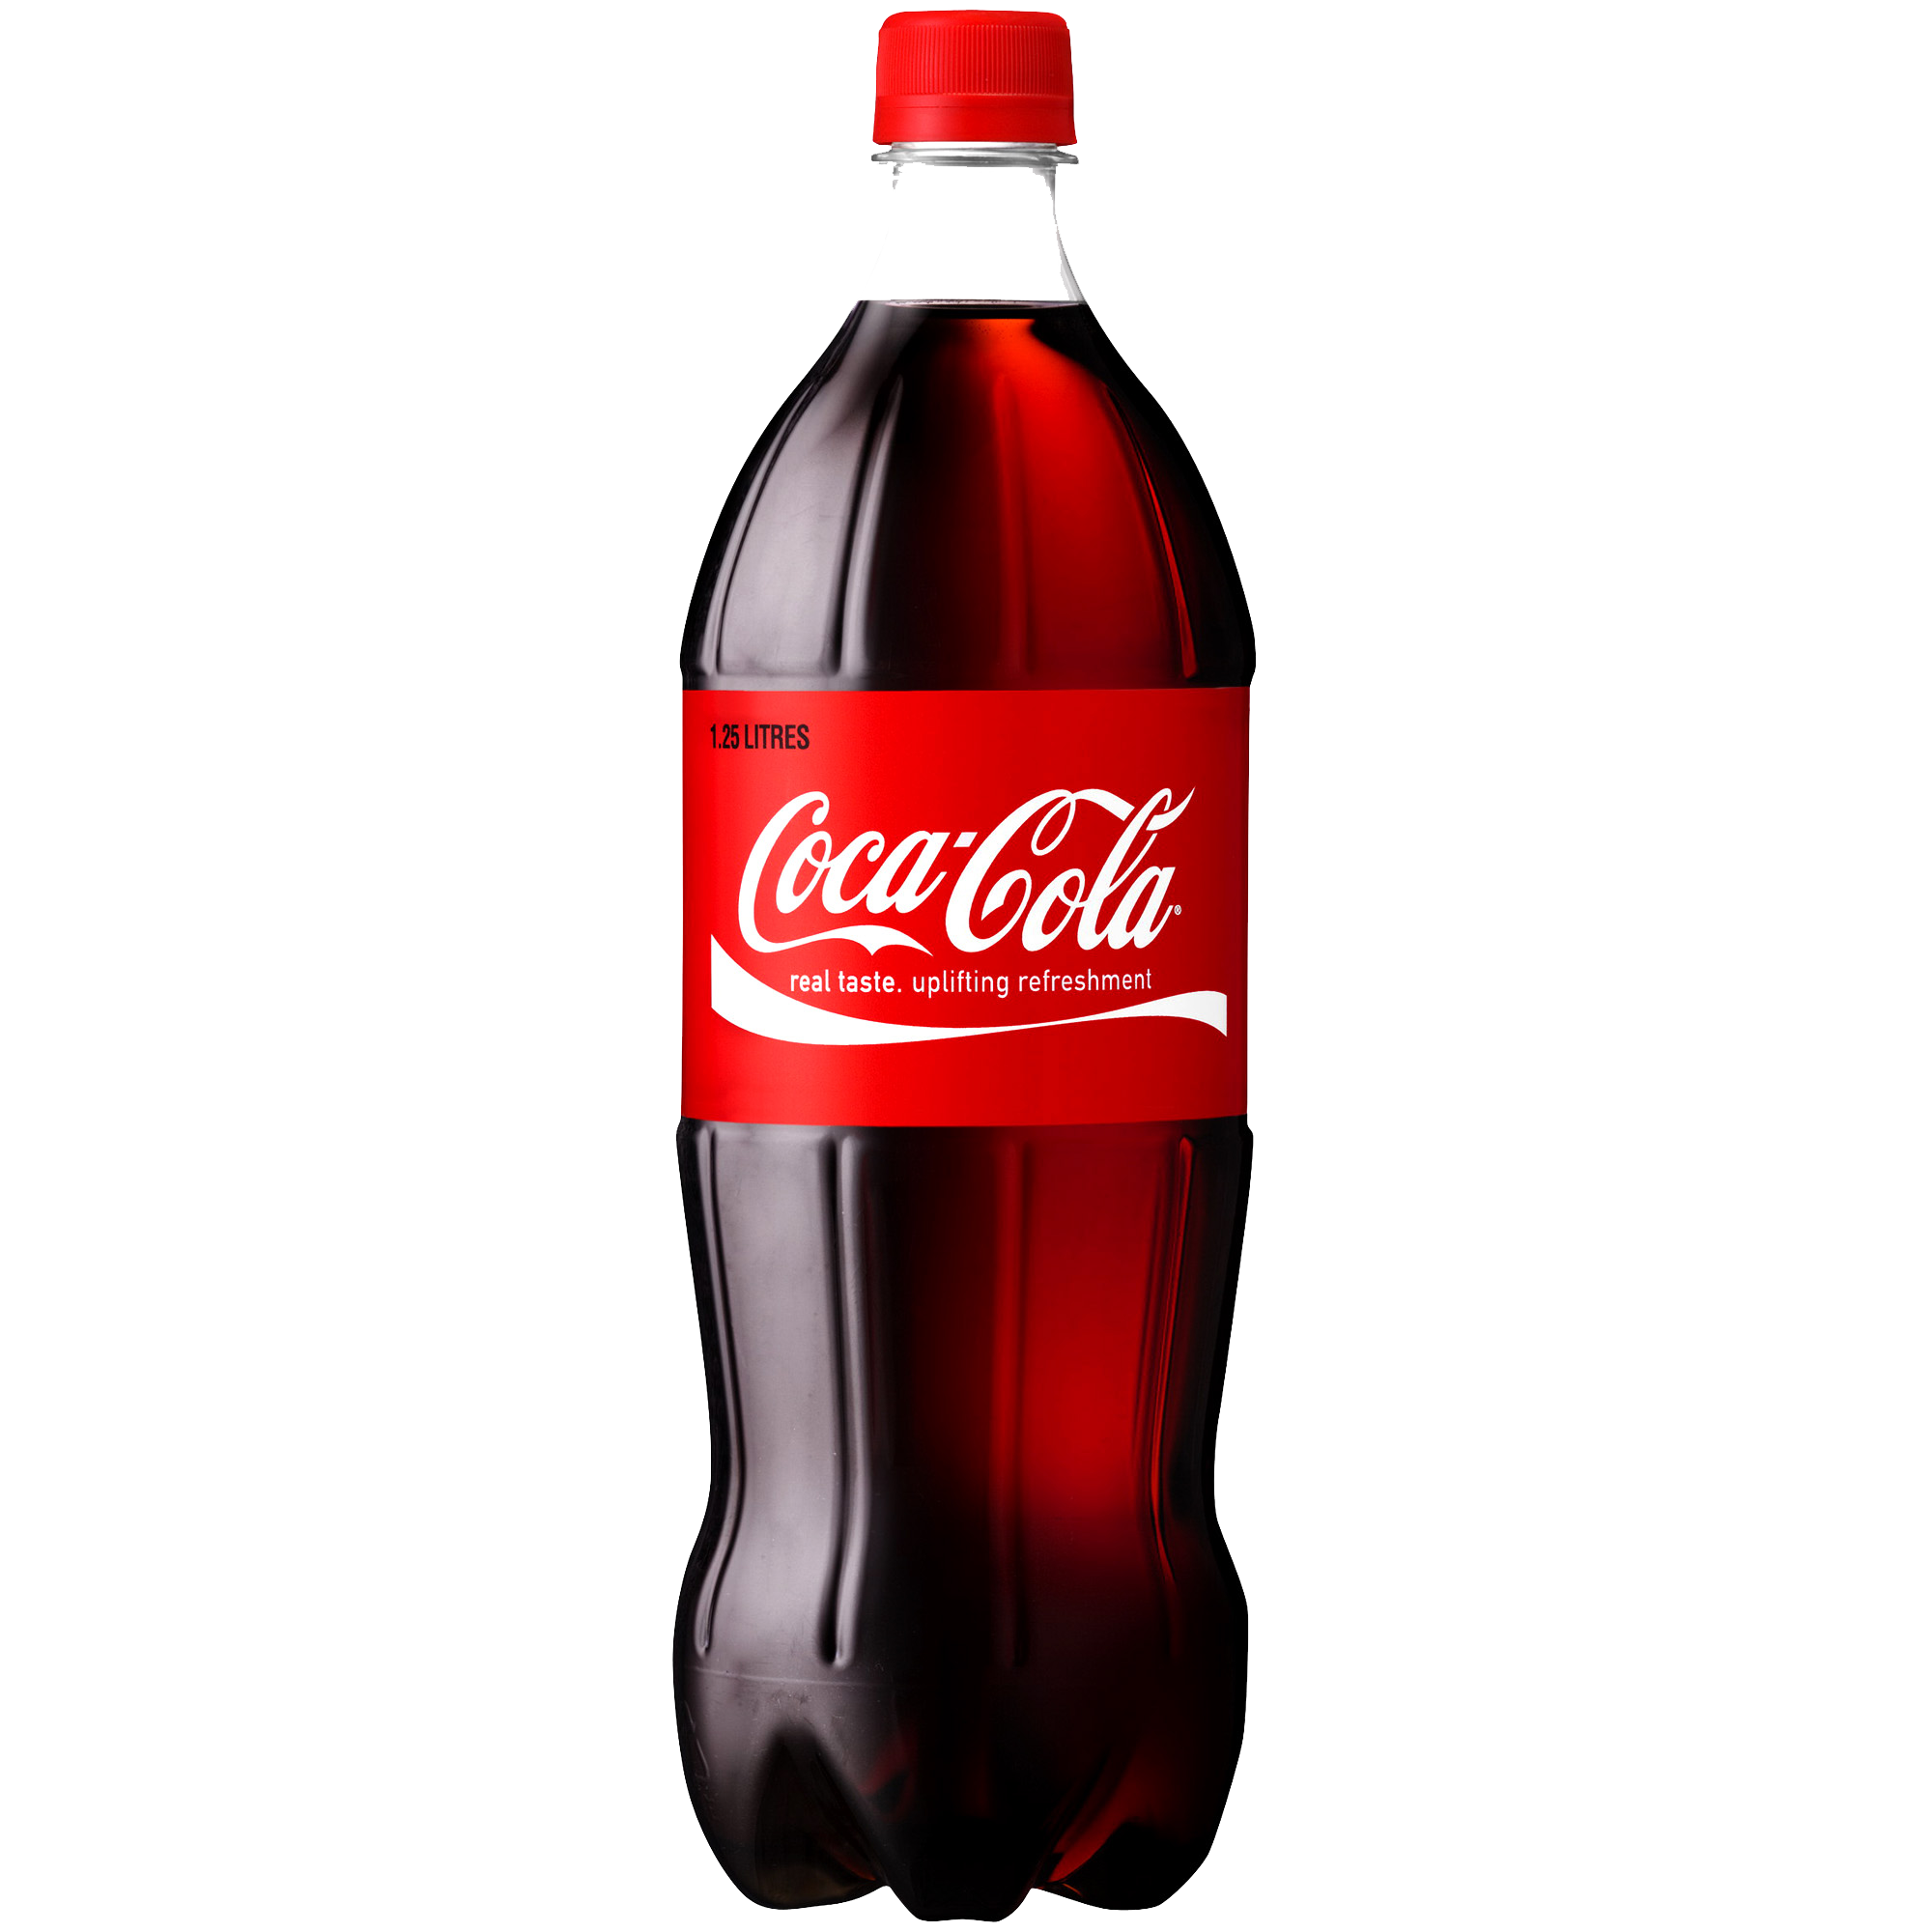 Bottle Coca Cola PNG Transparent image #41657